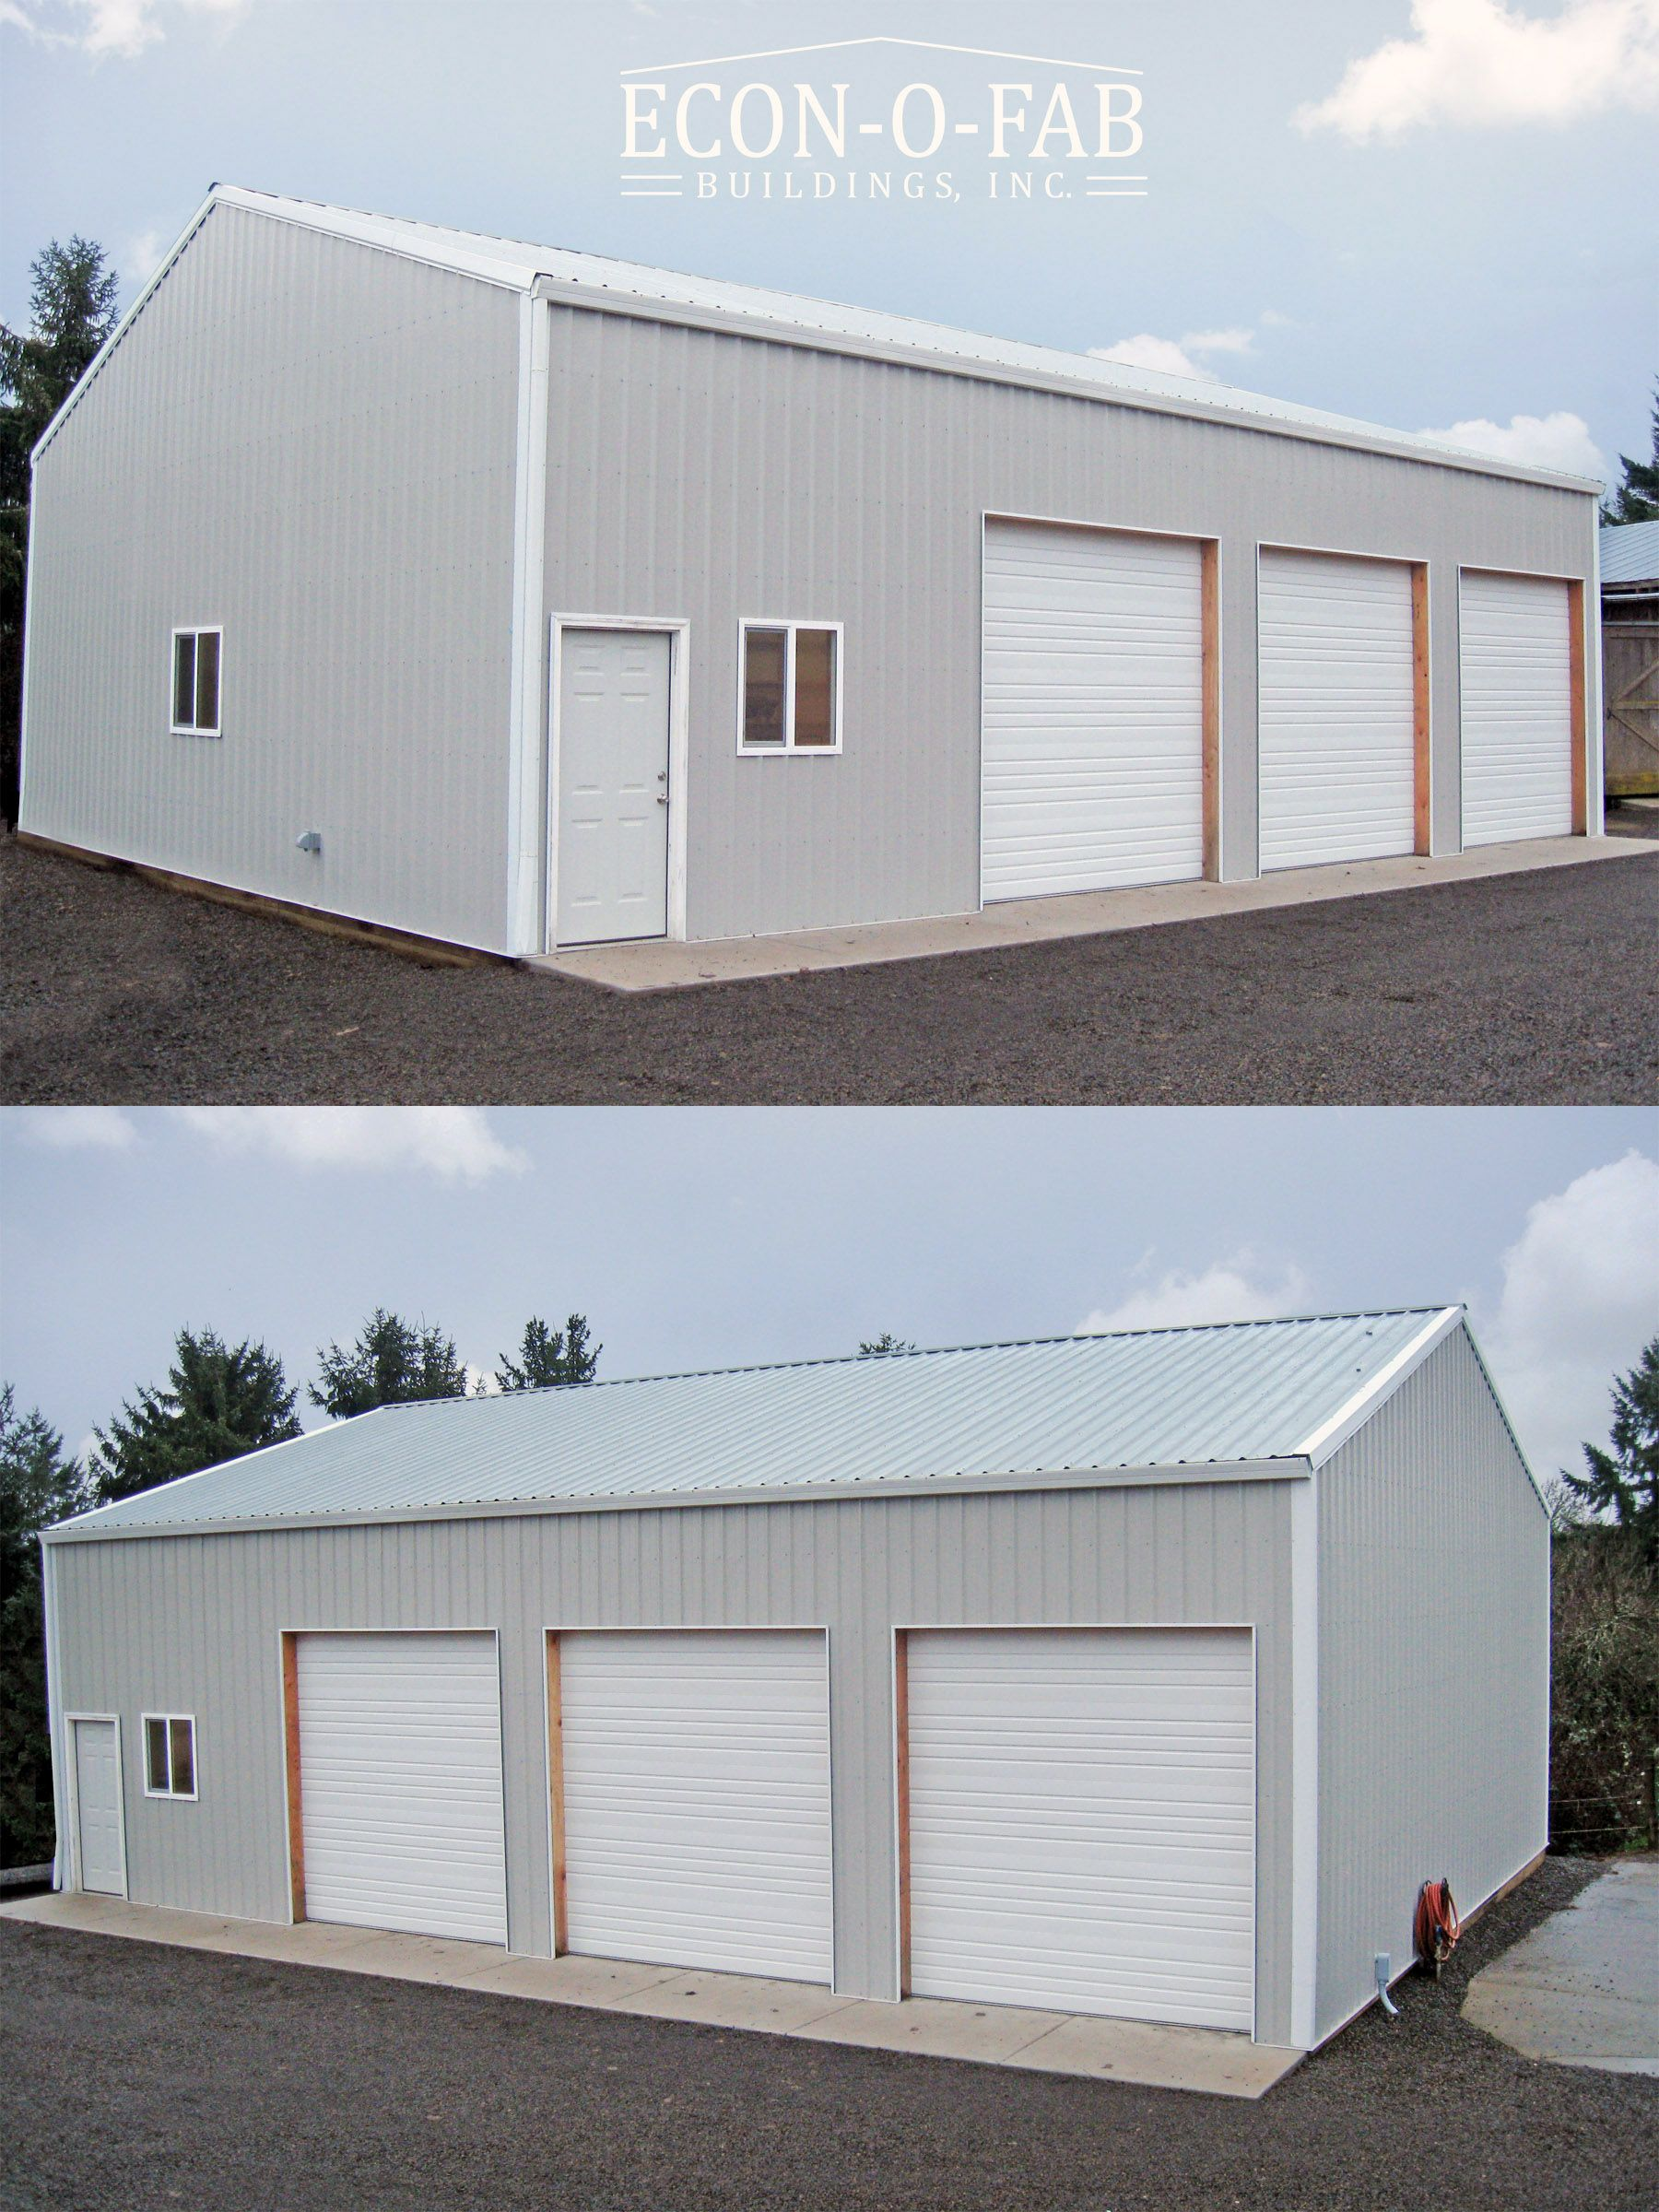 36 X 48 X 14 Pole Building In 2020 Metal Garage Buildings Pole Barn Garage Building A Pole Barn